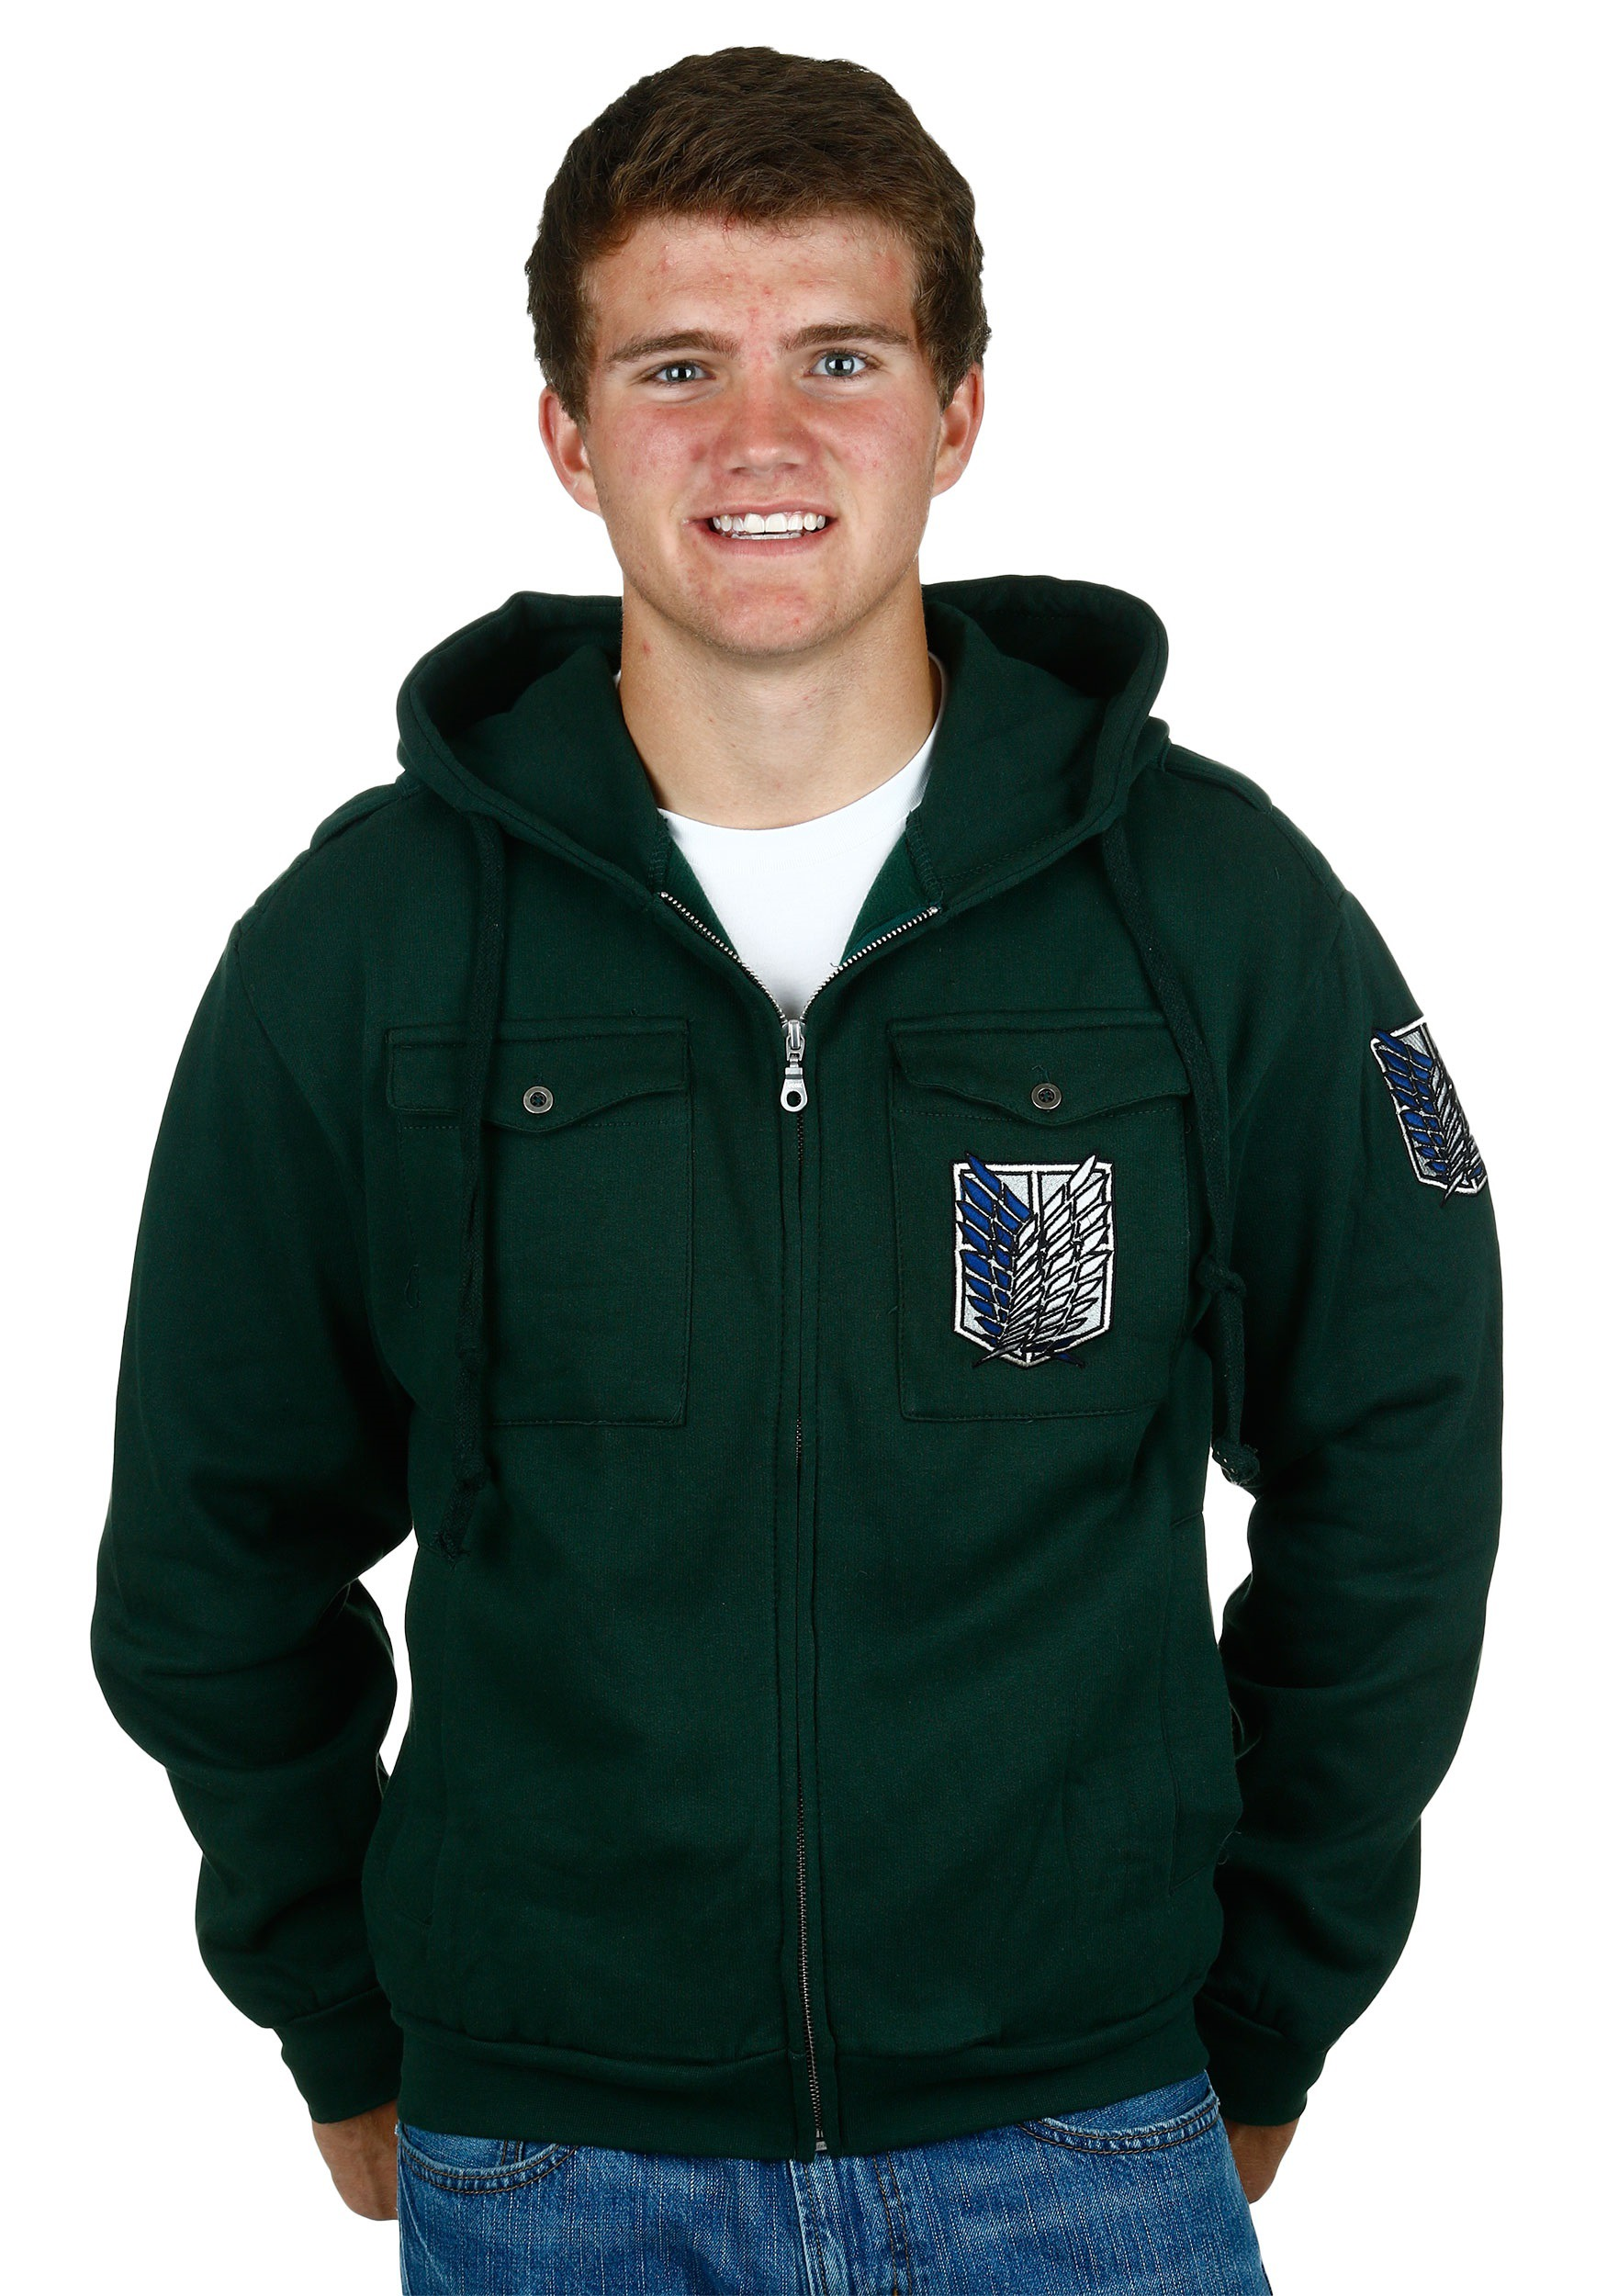 Attack On Titan Scout Regiment Chest Pocket Hoodie